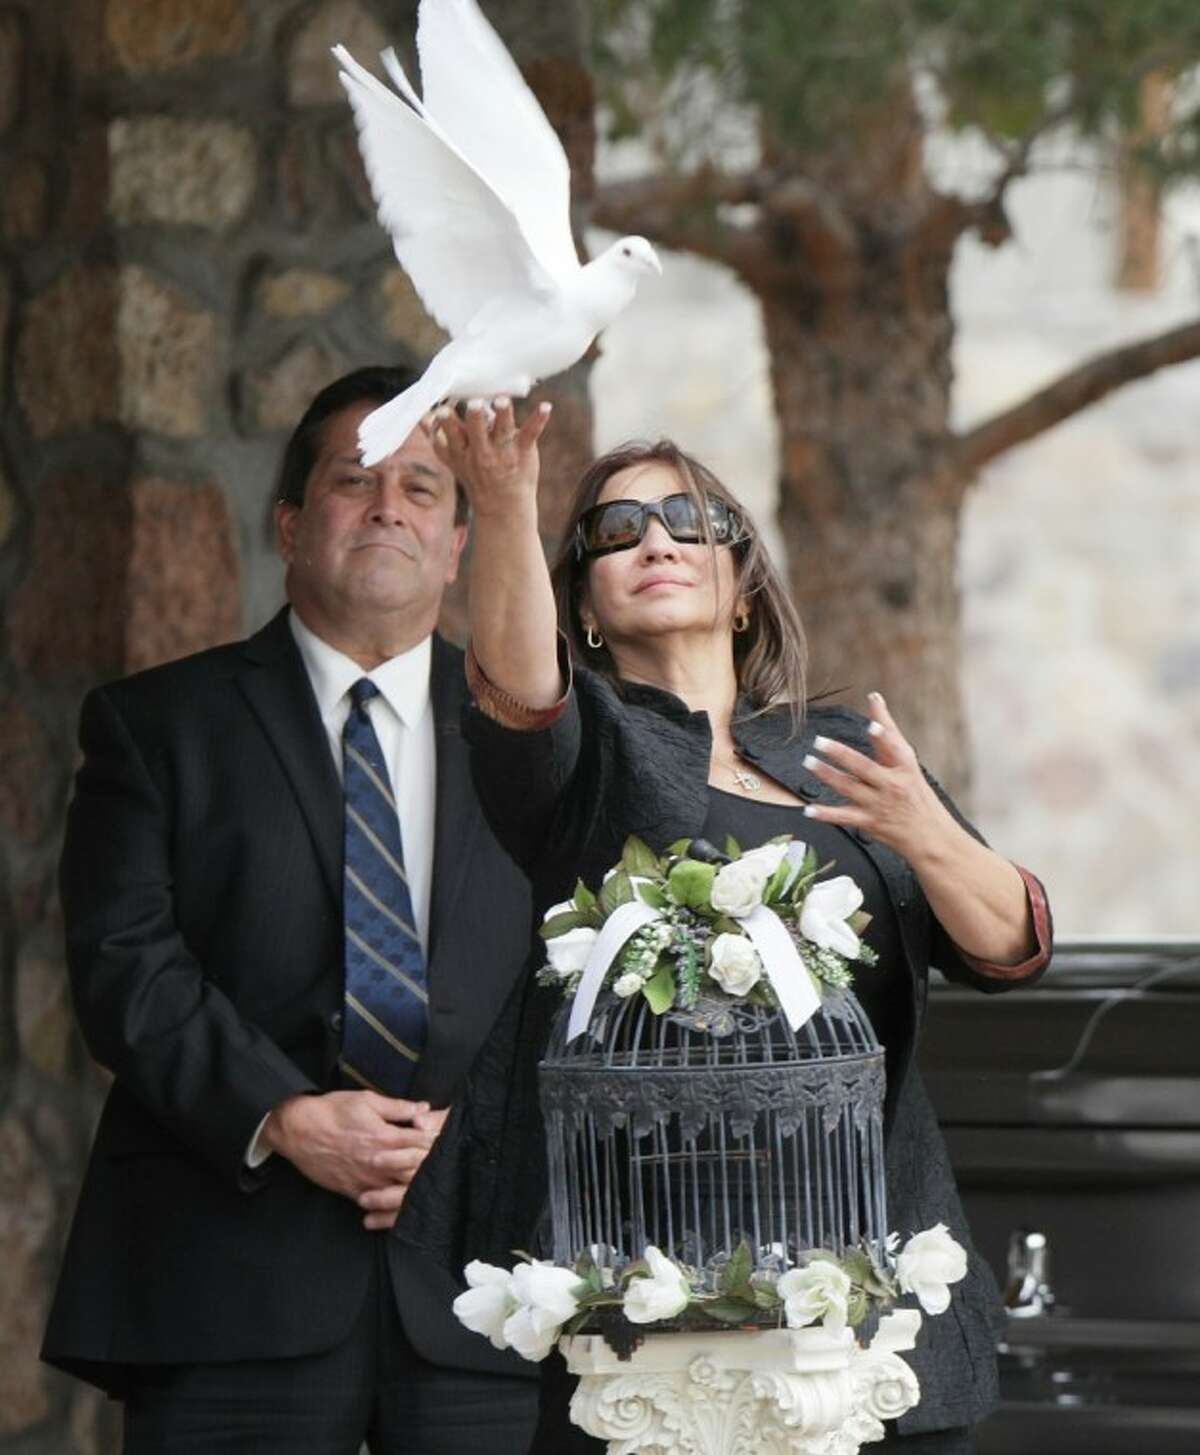 """Flora Enchinton Bernal releases a white dove during a graveside service for actor Sherman Hemsley Wednesday in Fort Bliss. Friends and family remembered Hemsley at his funeral service in Texas by showing video clips of his best known role as George Jefferson on the TV sitcom """"The Jeffersons."""" He died in July but a fight over his estate had delayed his burial."""